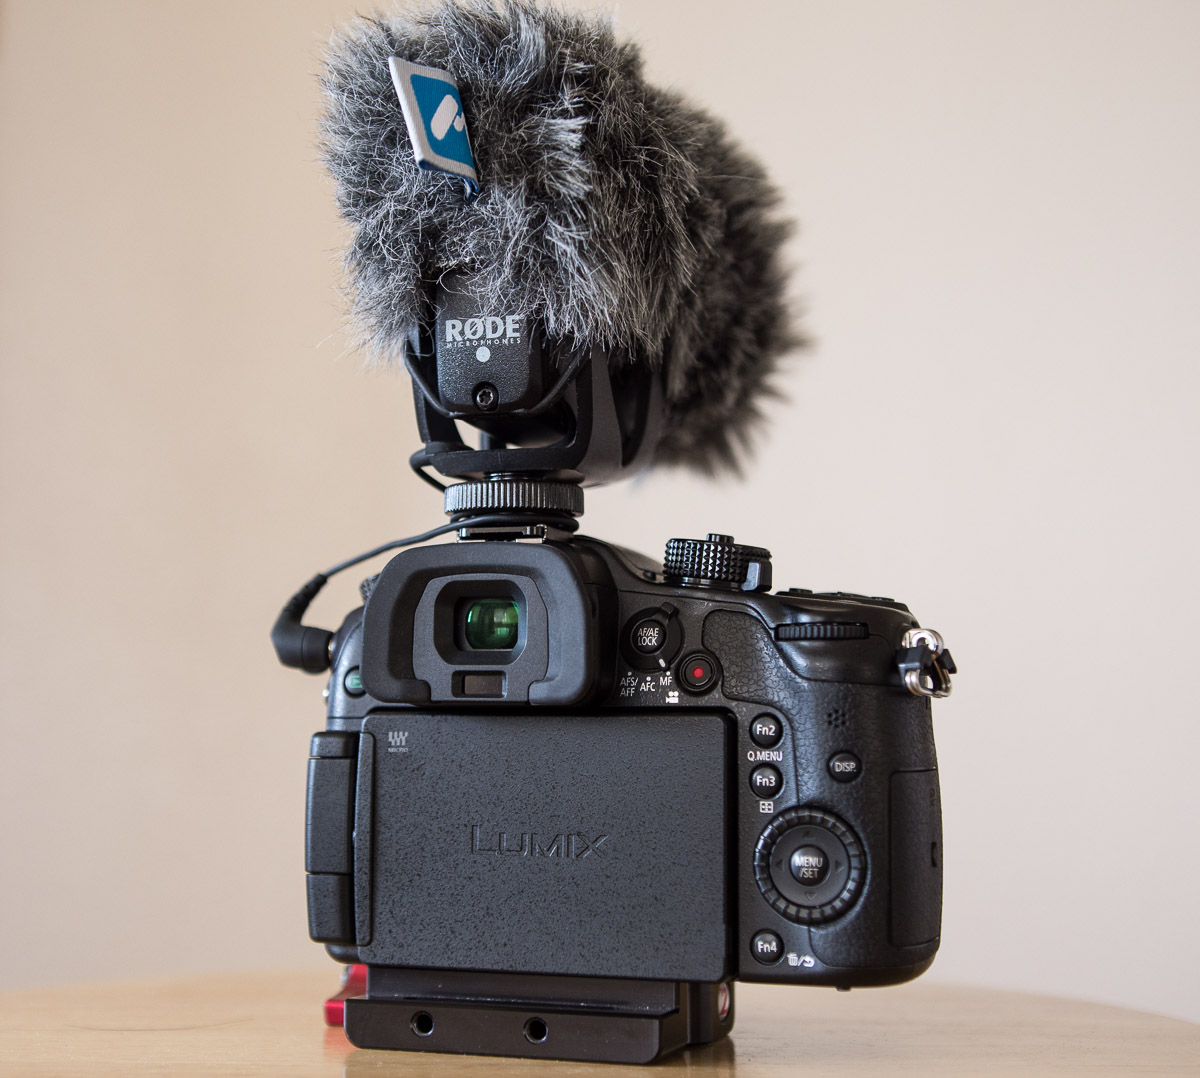 Panasonic Gh4 Audio Buzz Fix The Good Bad Strange Mic Rode Videomicro Video Micro Noise Floor Test Setup